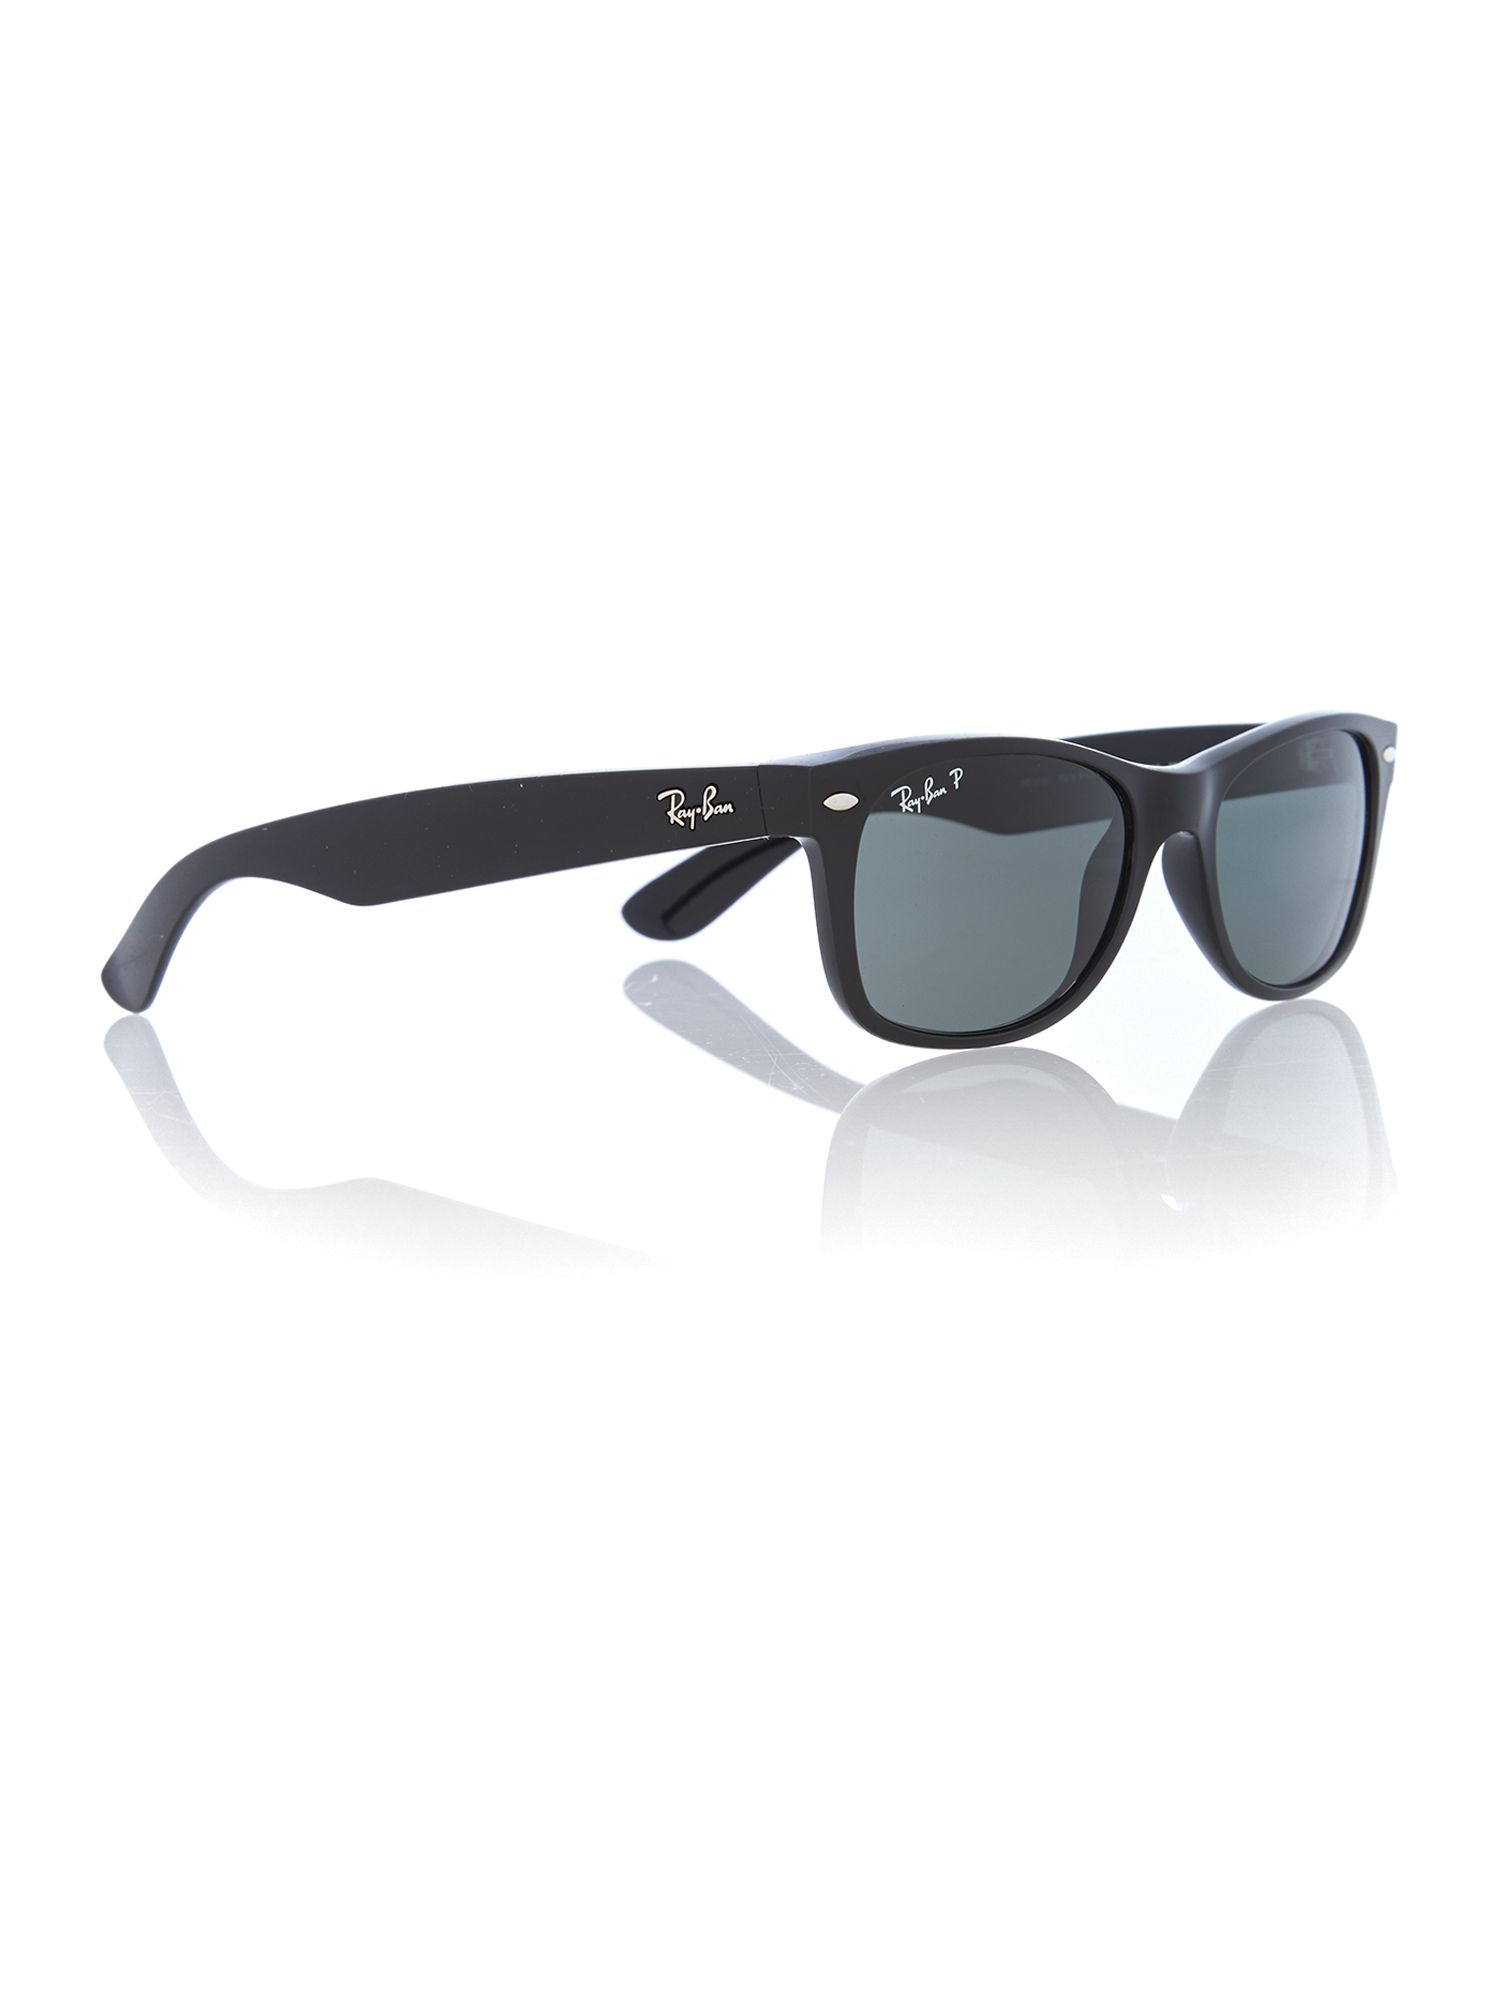 Men`s 0rb2132 sunglasses